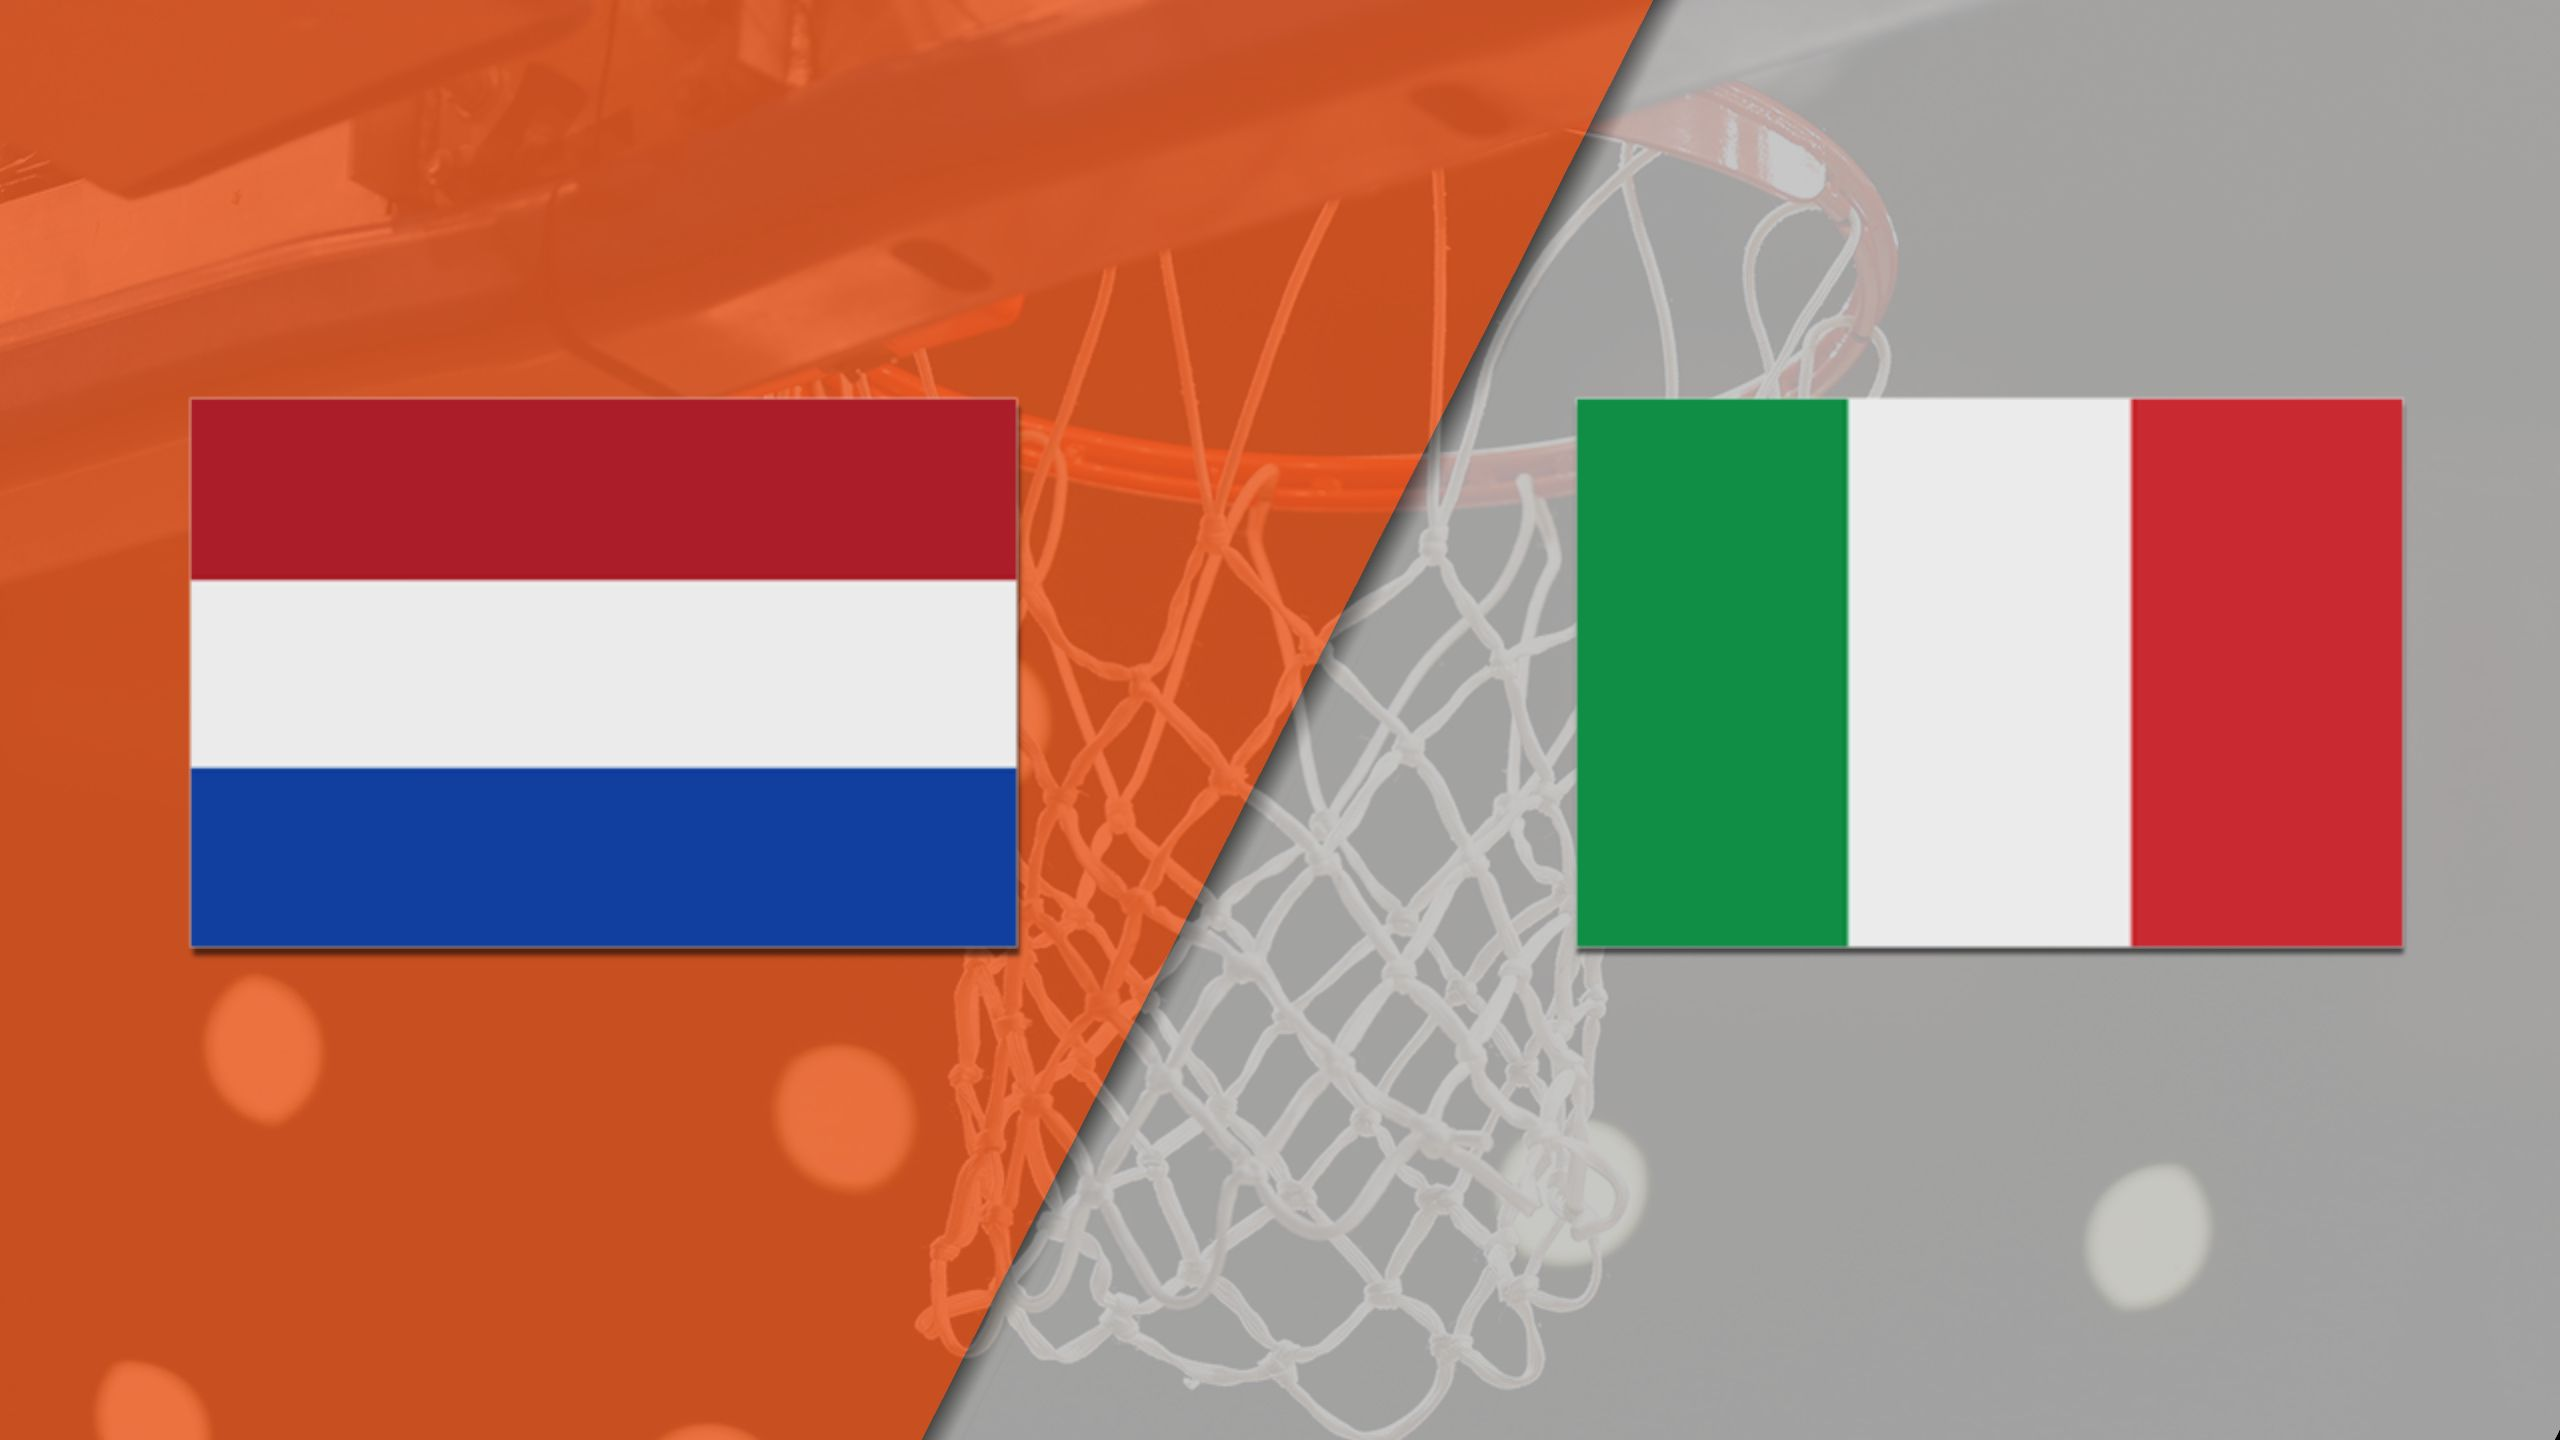 Netherlands vs. Italy (FIBA World Cup 2019 Qualifier)